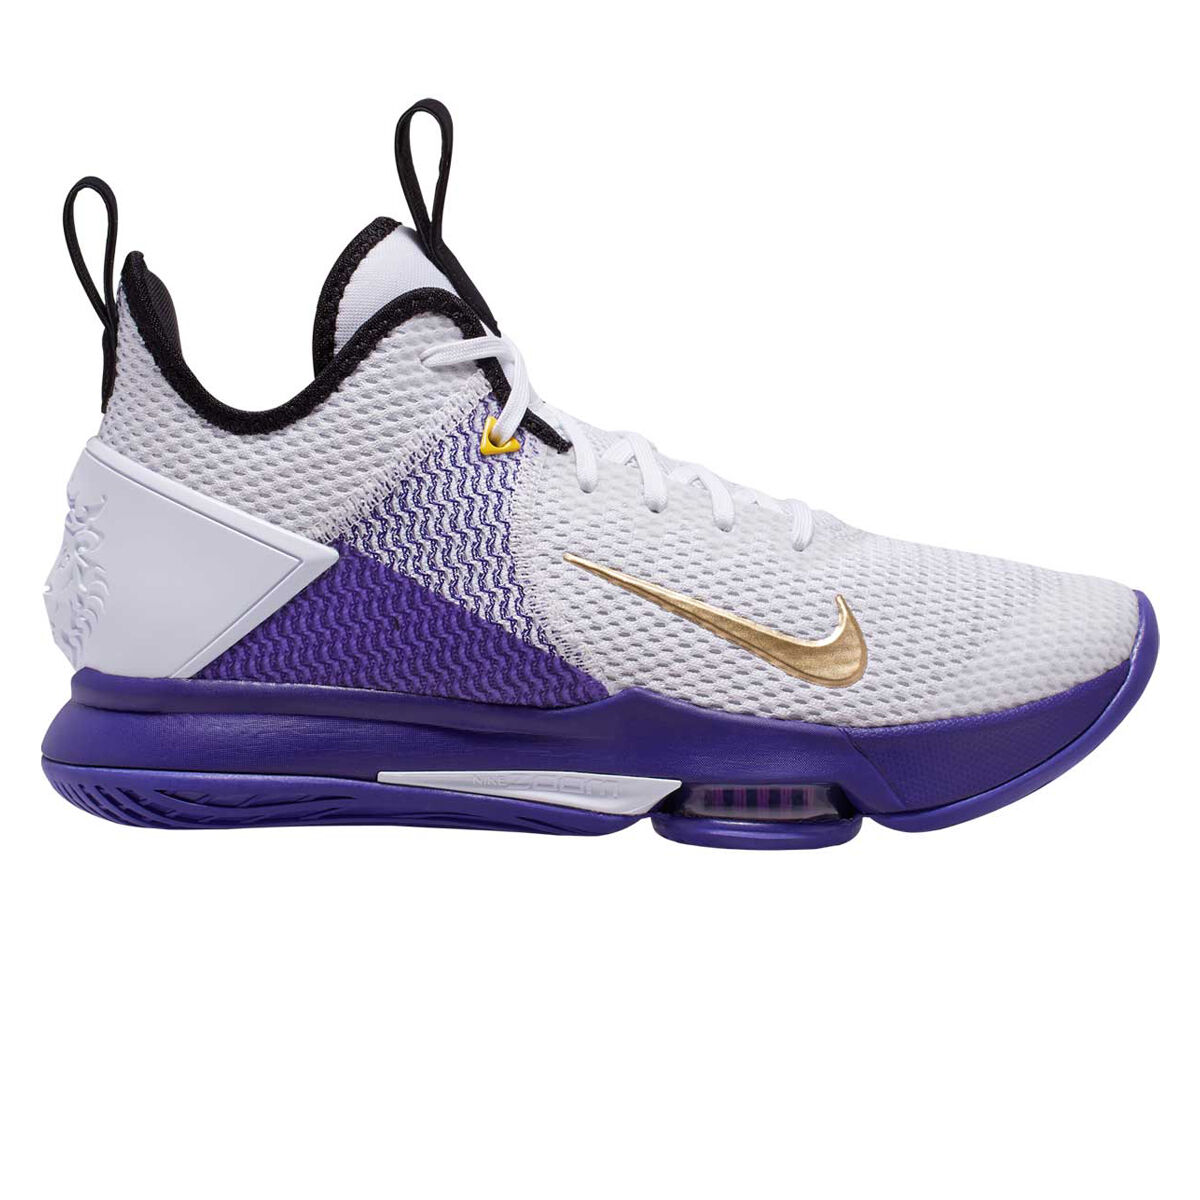 Nike LeBron Witness IV Mens Basketball Shoes